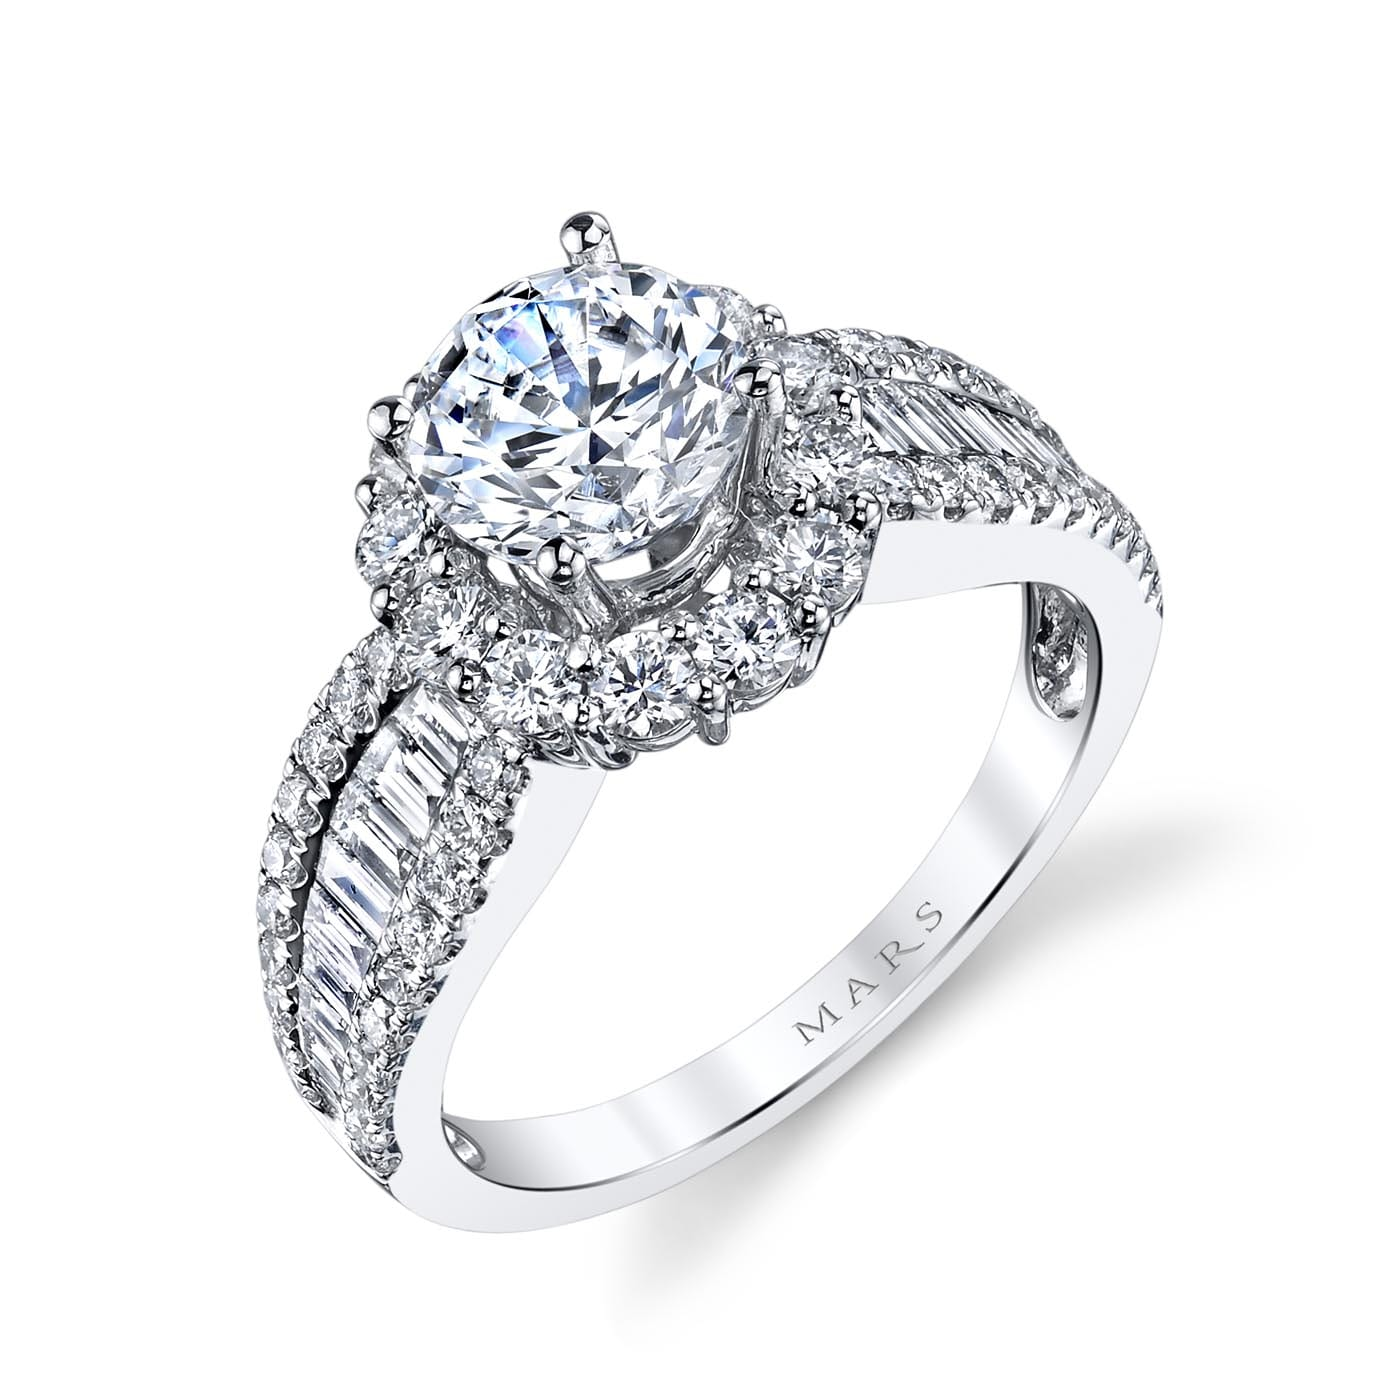 Halo Engagement RingStyle #: MARS 25649